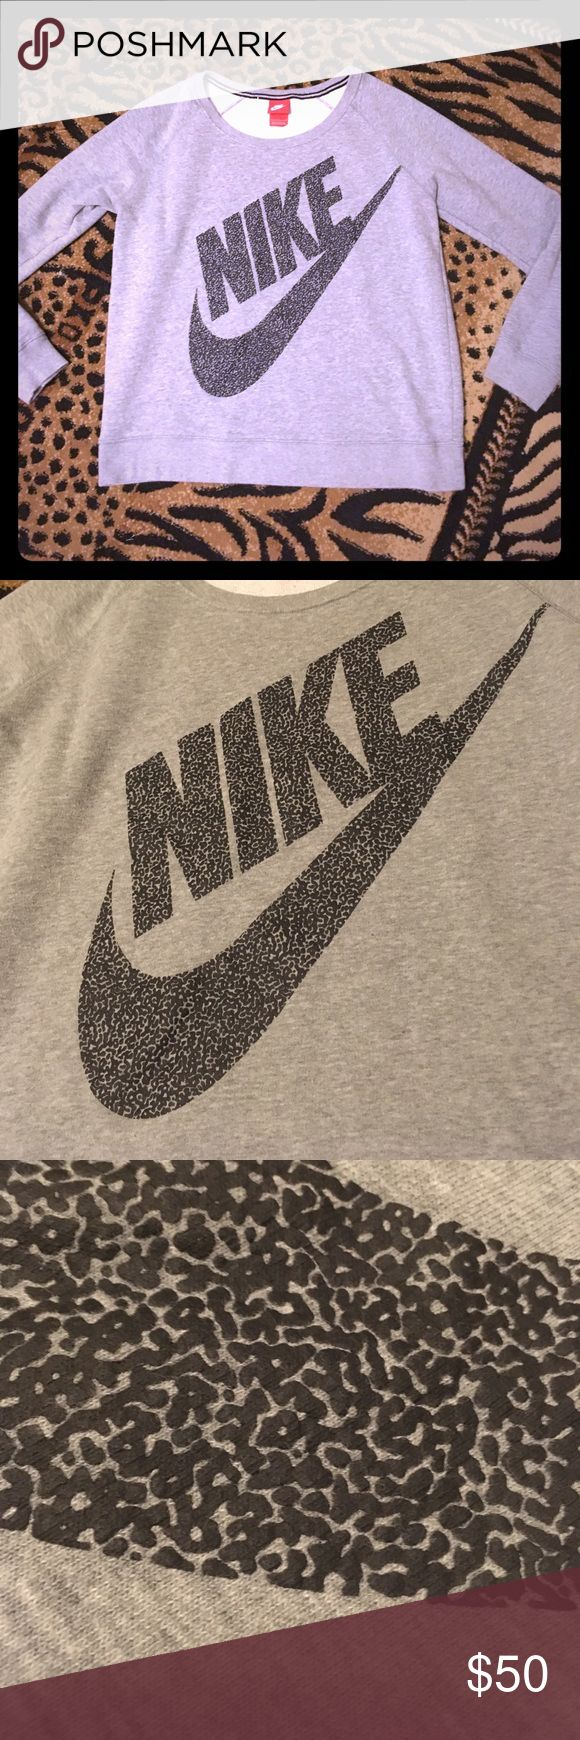 Nike leopard print sweatshirt Gray Nike sweatshirt. With black cheetah leopard print logo. Rare. Gently used. Good condition! Nike Tops Sweatshirts & Hoodies